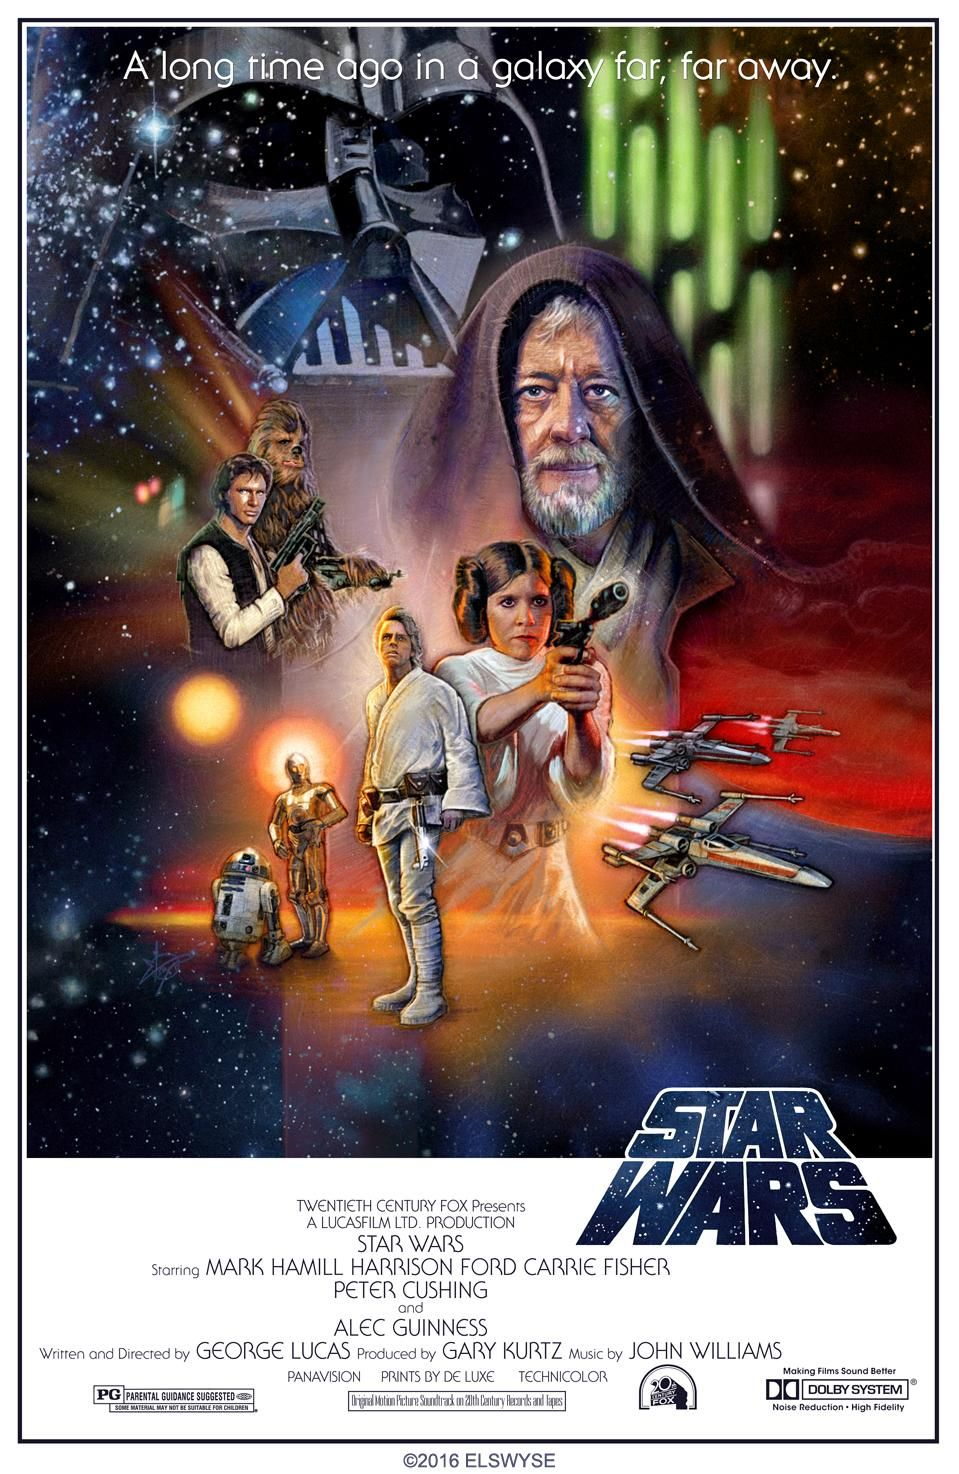 Star Wars Episode Iv A New Hope 1977 Hd Wallpaper From Gallsource Com Star Wars Poster Star Wars Movies Posters Star Wars Poster Art